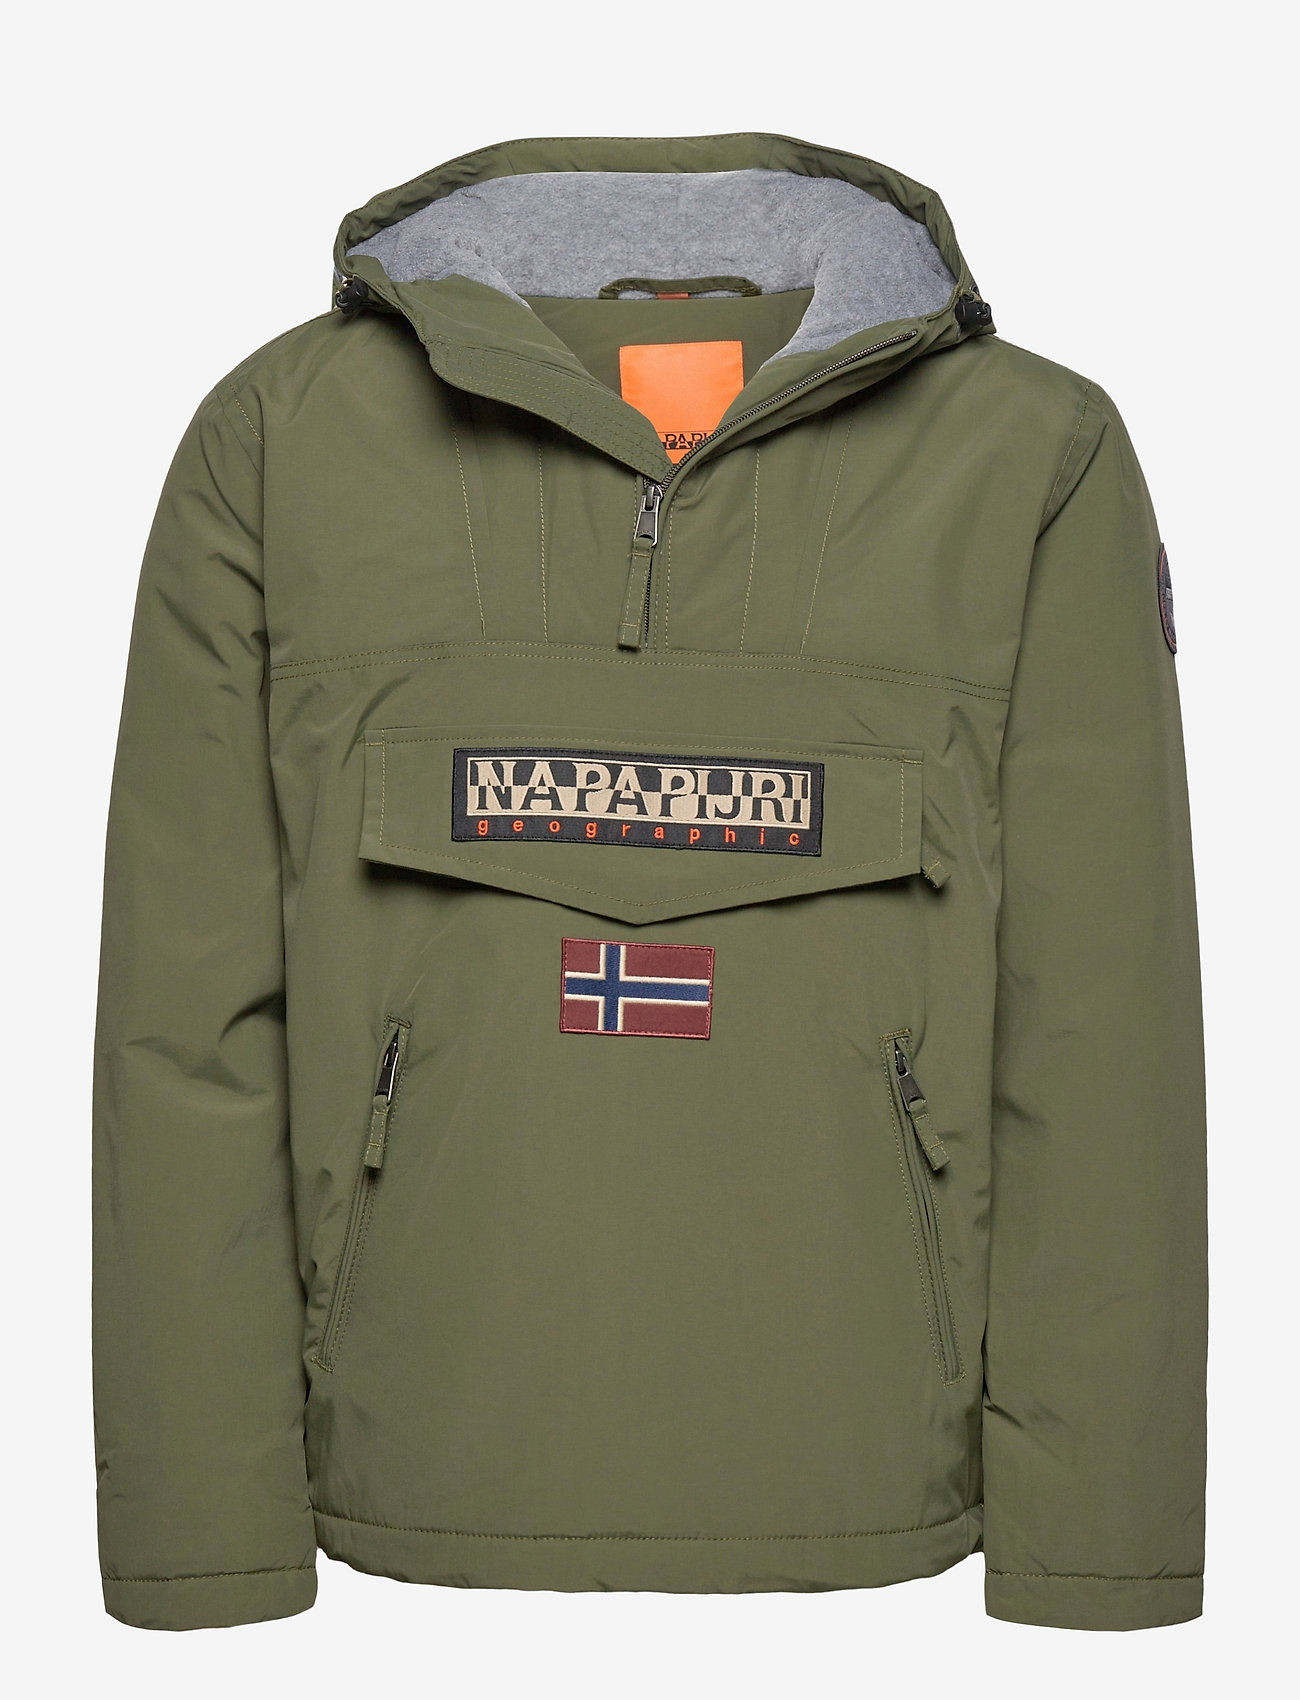 Napapijri RAINFOREST POCKET 1 - Jakker og frakker GREEN DEPTHS - Menn Klær